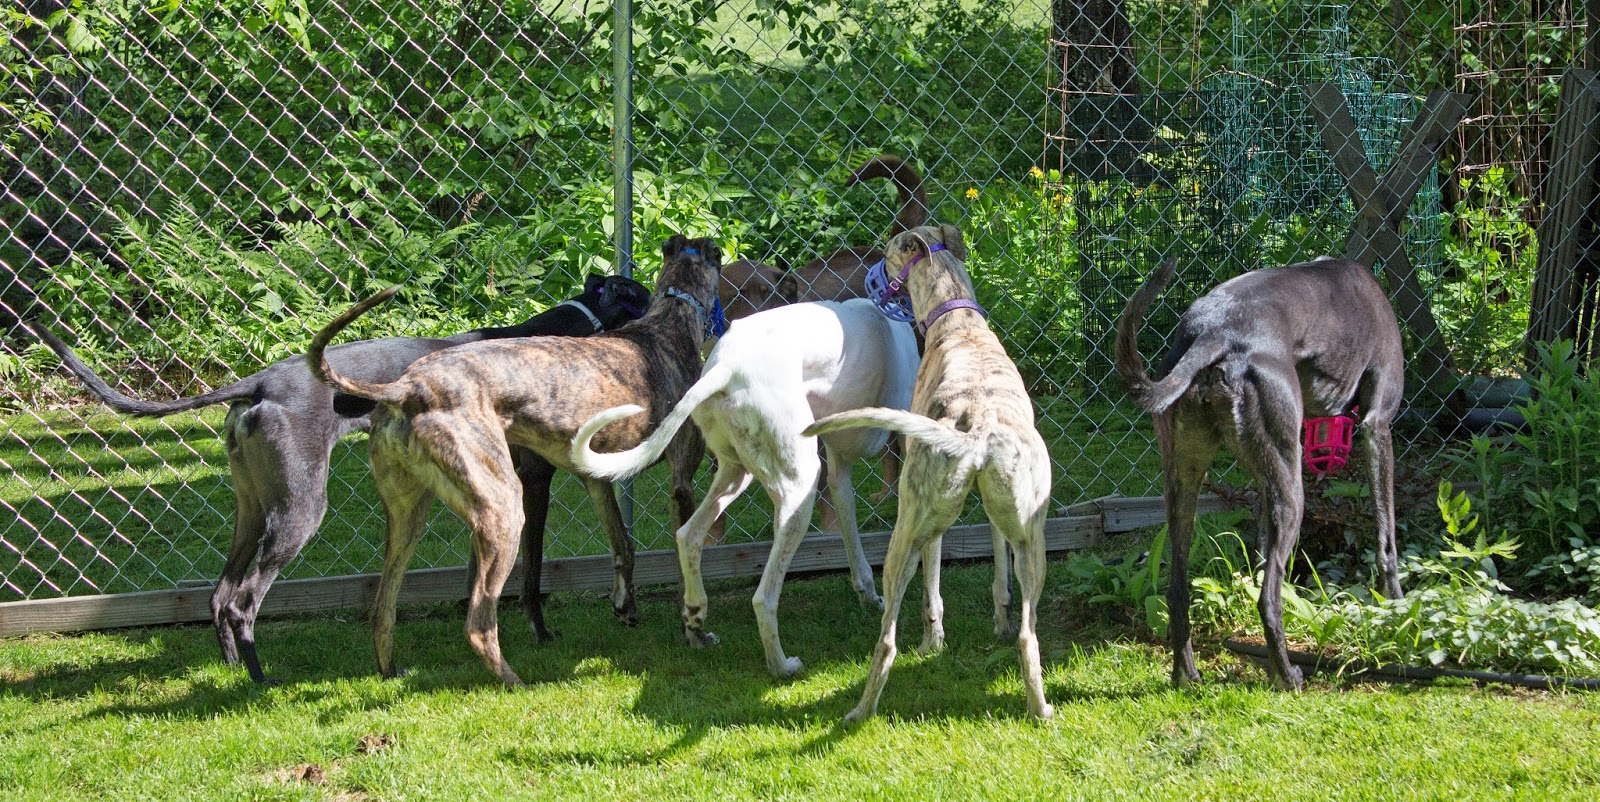 The greyhound gang